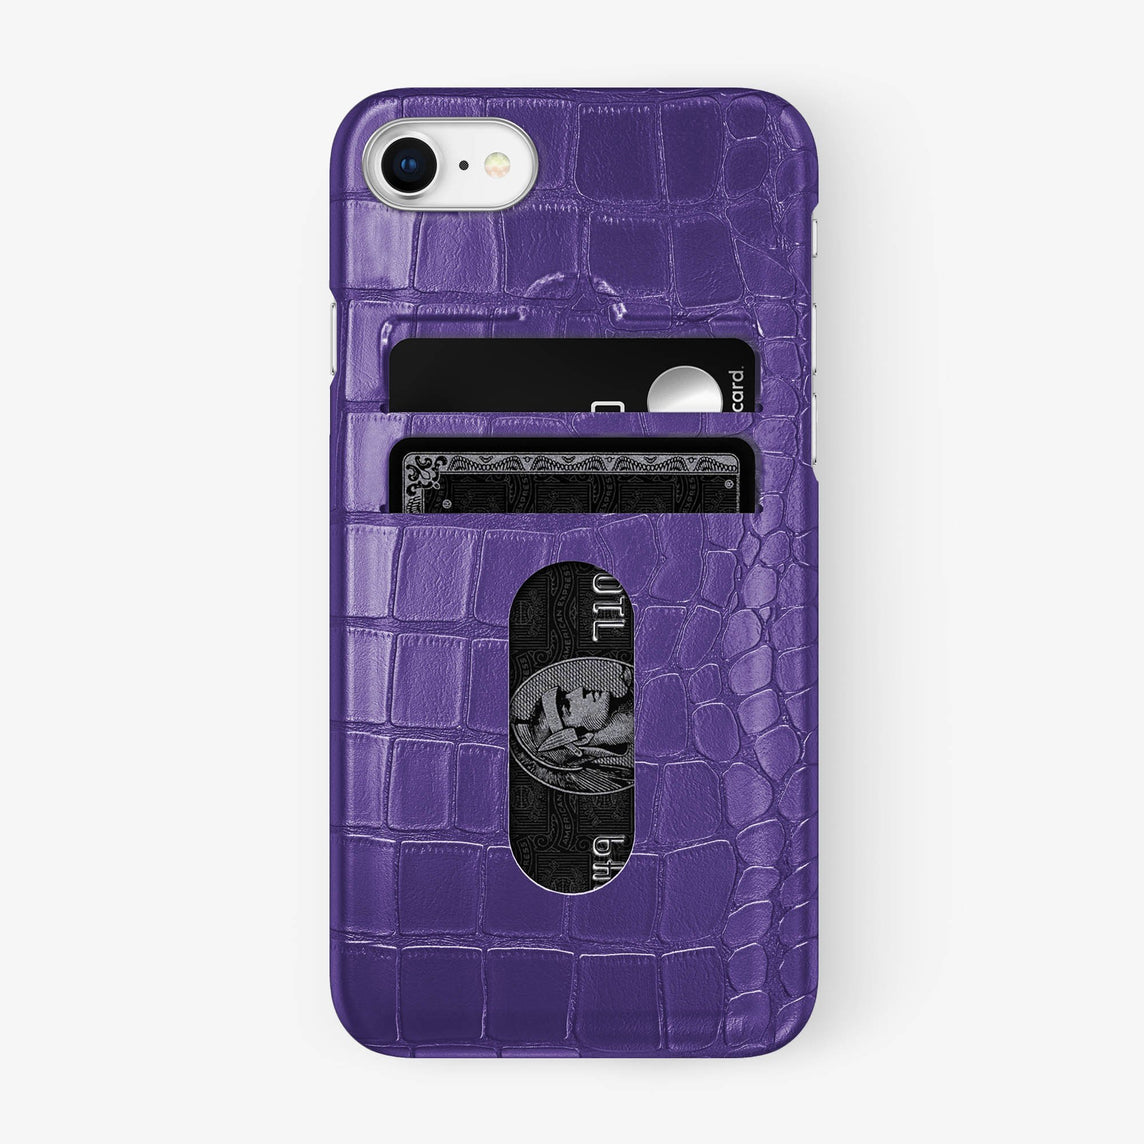 Alligator Card Holder Case iPhone 7/8 | Purple - Stainless Steel - Hadoro